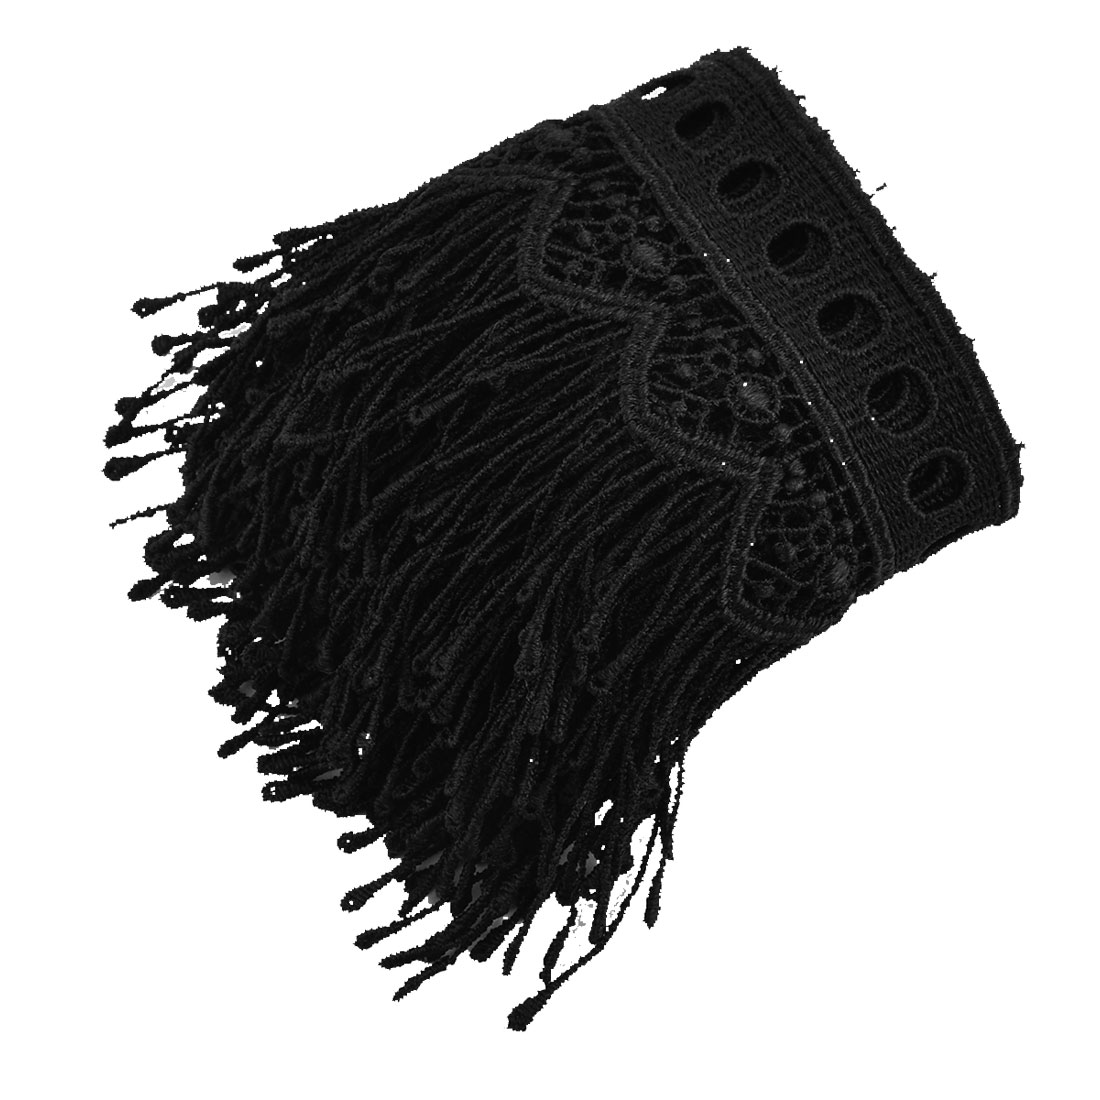 Wedding Polyester DIY Craft Tassels Sewing Lace Trim Applique Black 2.2 Yards